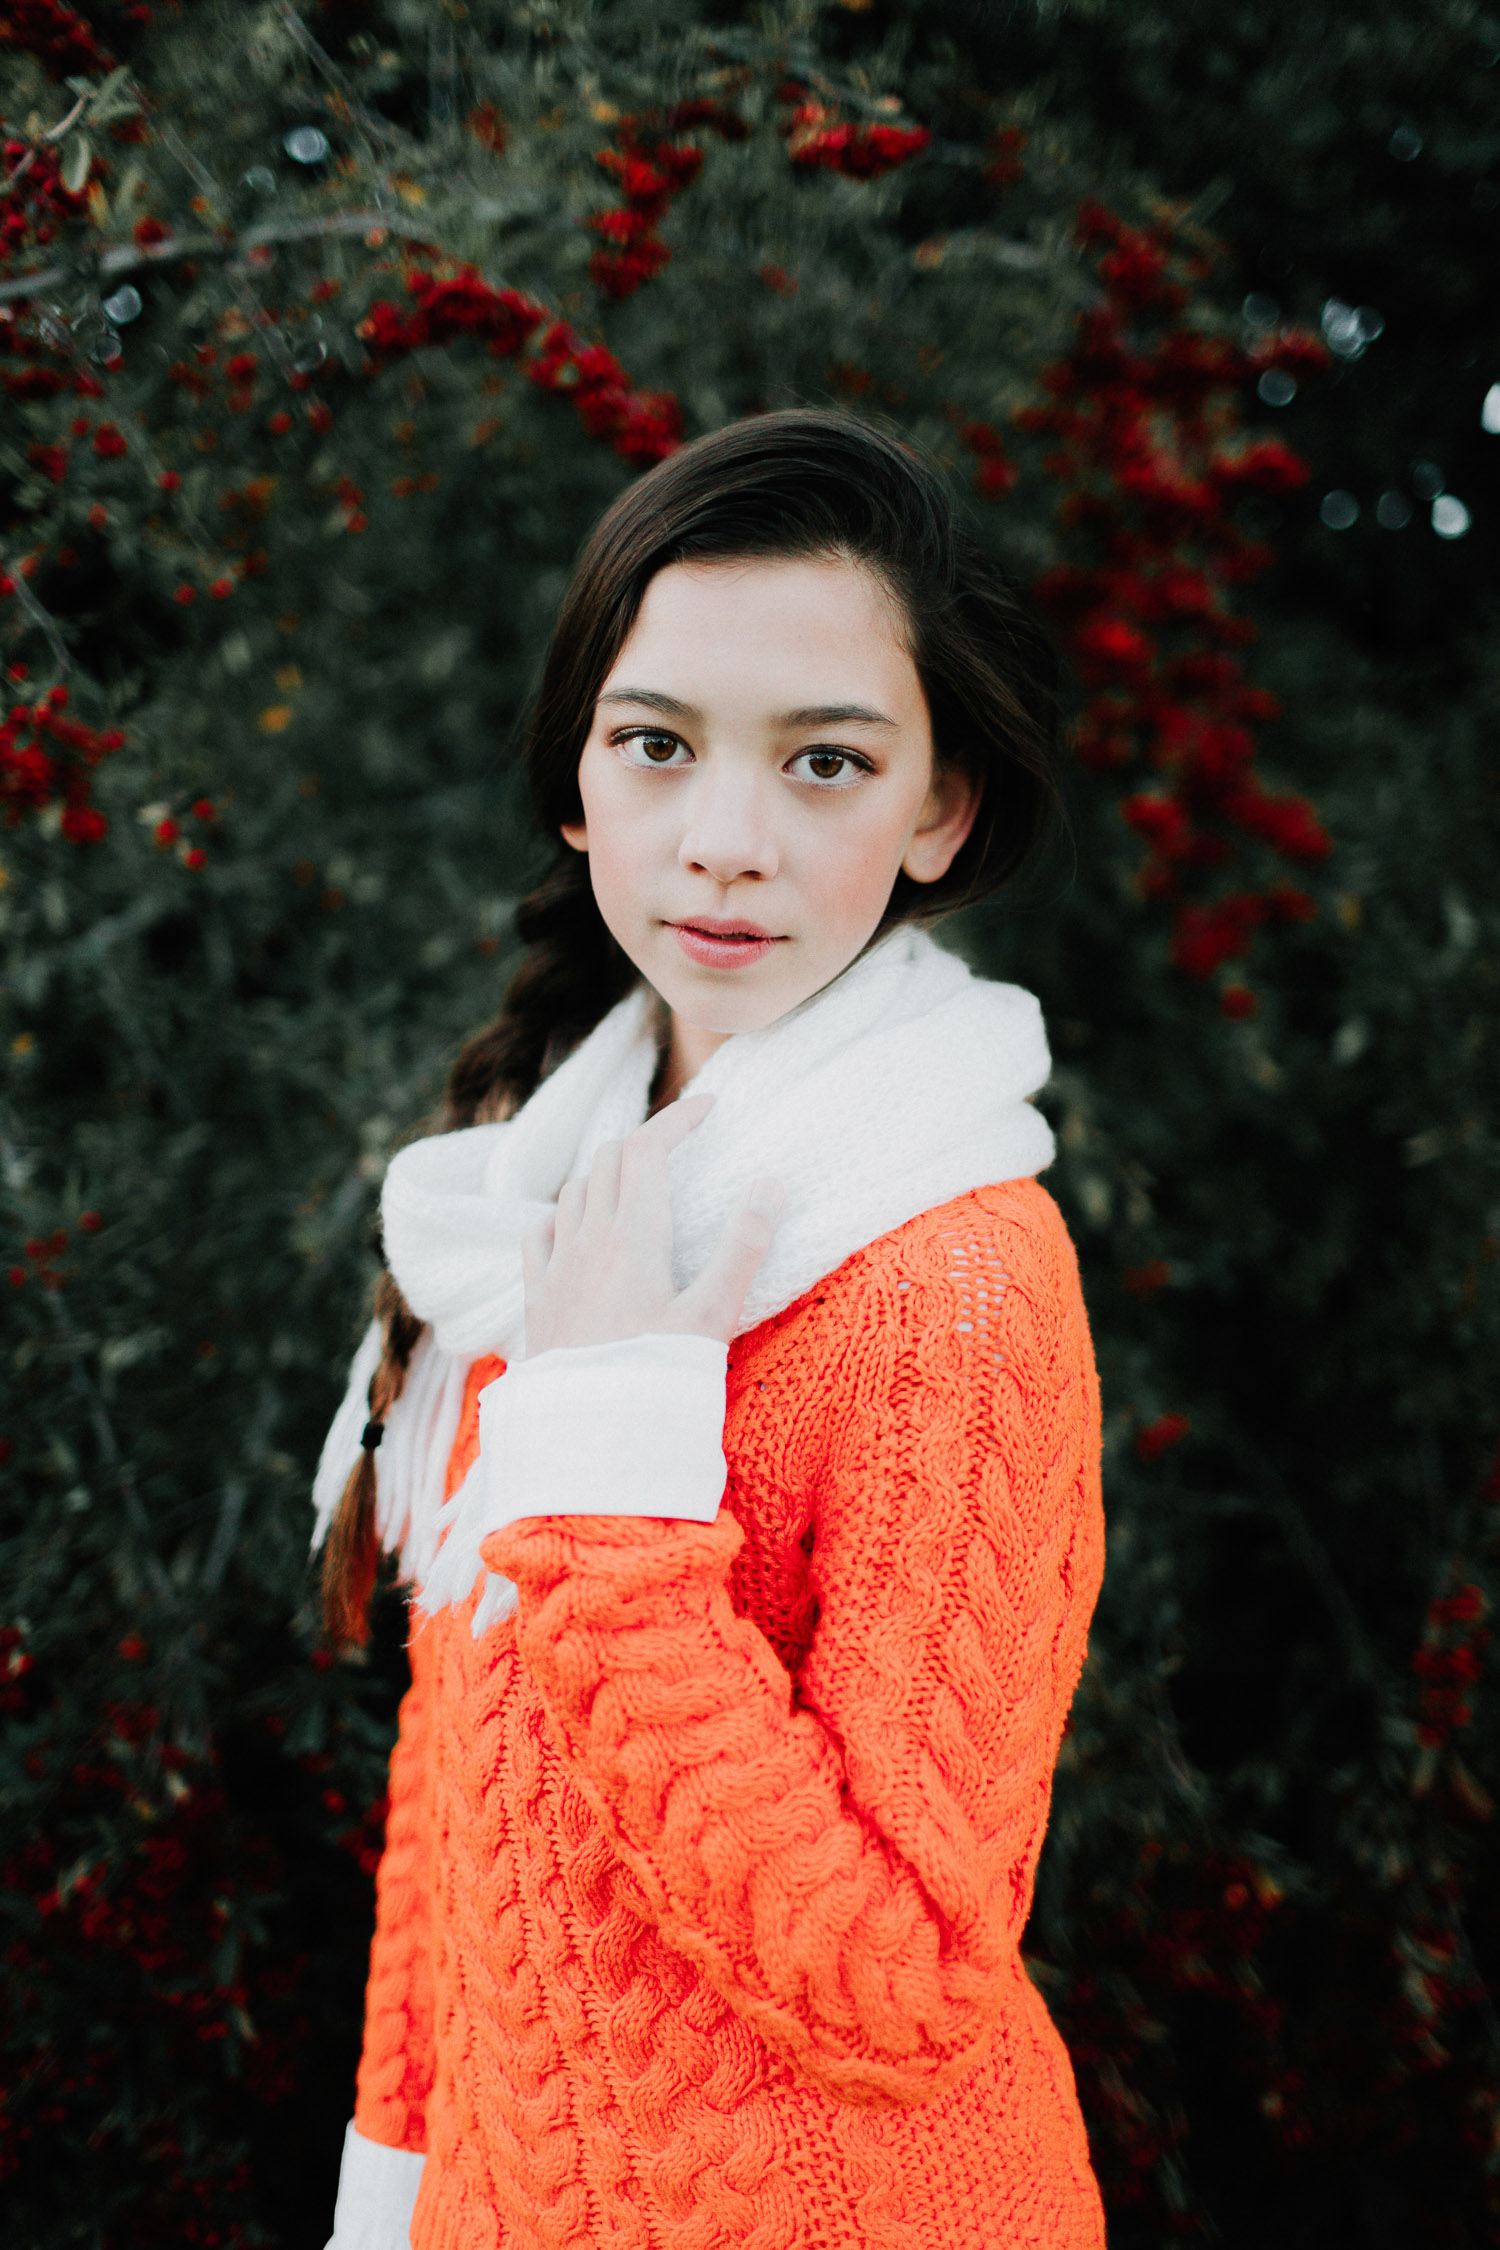 Image of orange sweater girl looking at camera